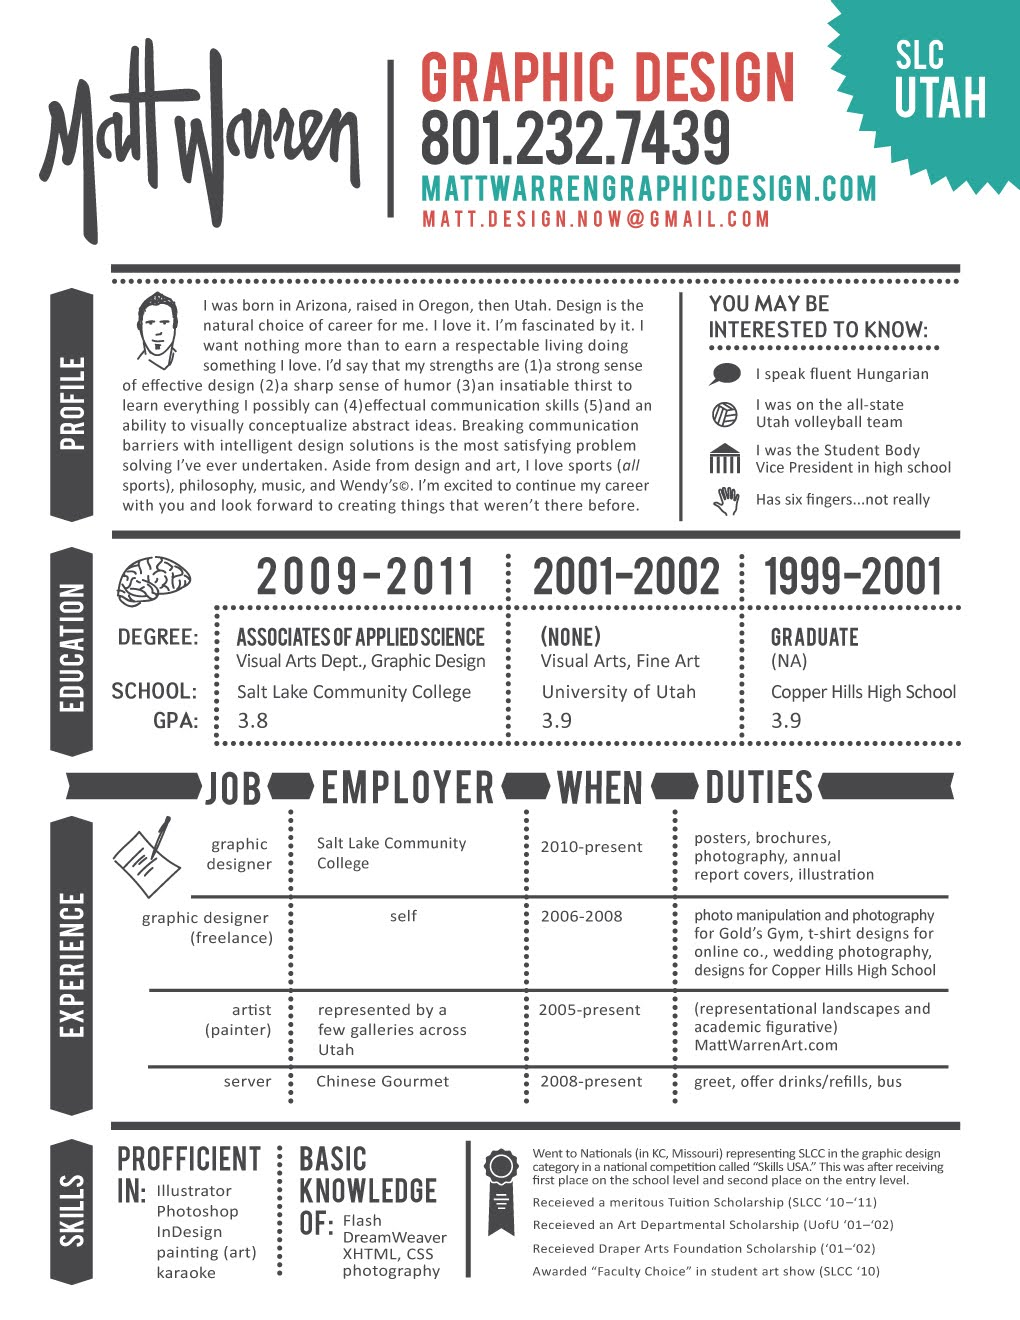 Opposenewapstandardsus  Ravishing  Images About Hire Me On Pinterest  Graphic Designer Resume  With Glamorous  Images About Hire Me On Pinterest  Graphic Designer Resume Resume Design And Resume With Delightful Places To Post Resume Also How Write Resume In Addition Resume Template Office And Free Resume Websites As Well As Resume Objective Necessary Additionally Template For Resume Word From Pinterestcom With Opposenewapstandardsus  Glamorous  Images About Hire Me On Pinterest  Graphic Designer Resume  With Delightful  Images About Hire Me On Pinterest  Graphic Designer Resume Resume Design And Resume And Ravishing Places To Post Resume Also How Write Resume In Addition Resume Template Office From Pinterestcom